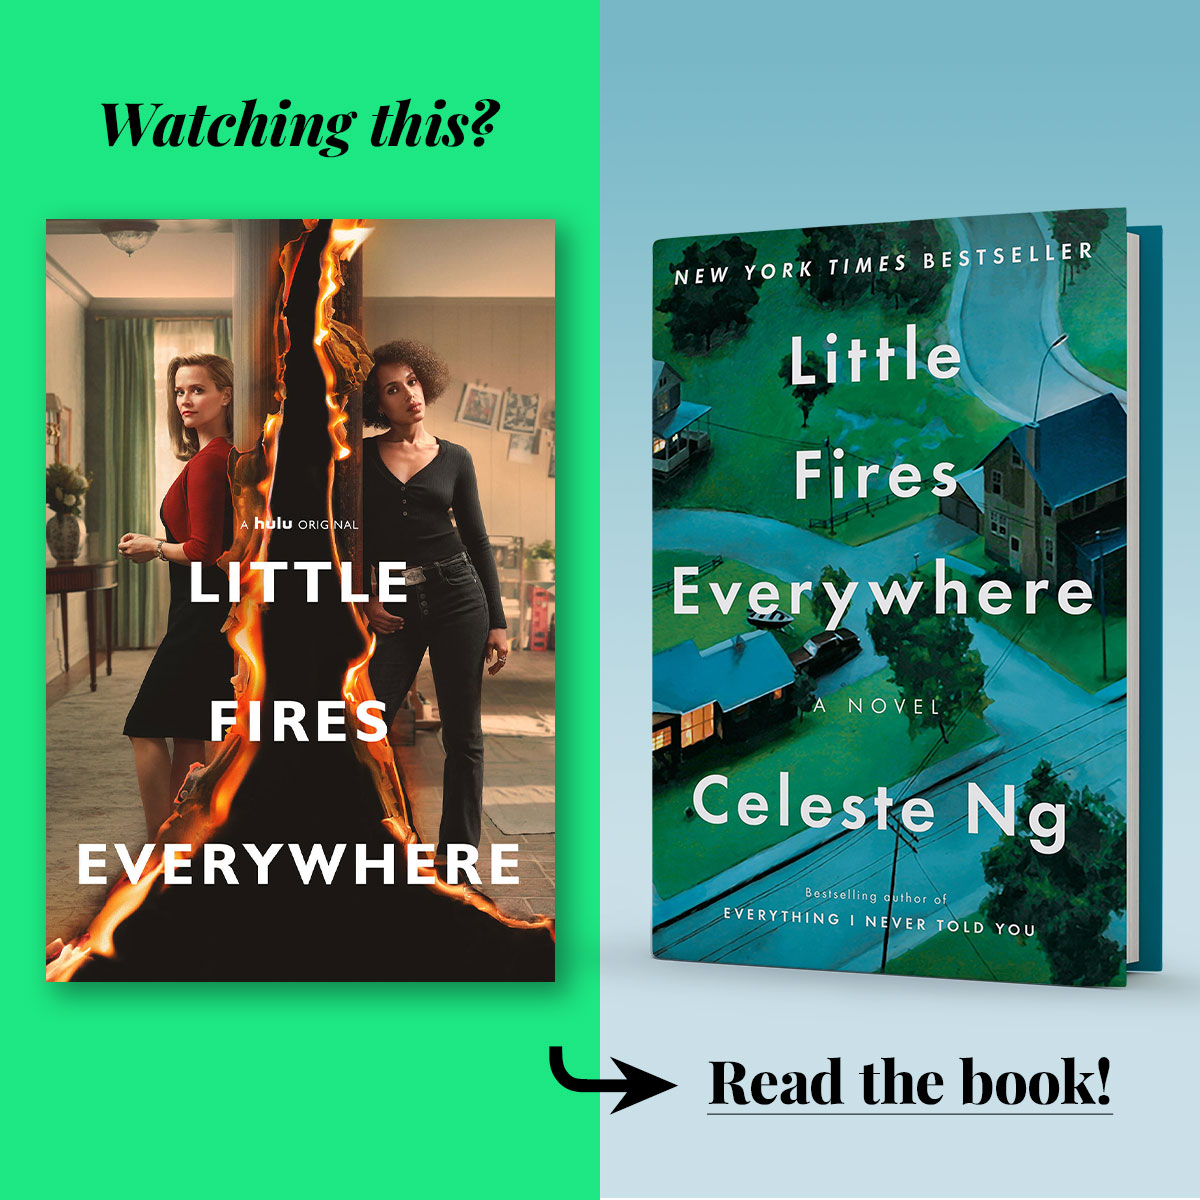 Little Fires Everywhere by Celeste Ng • Series streaming on Hulu